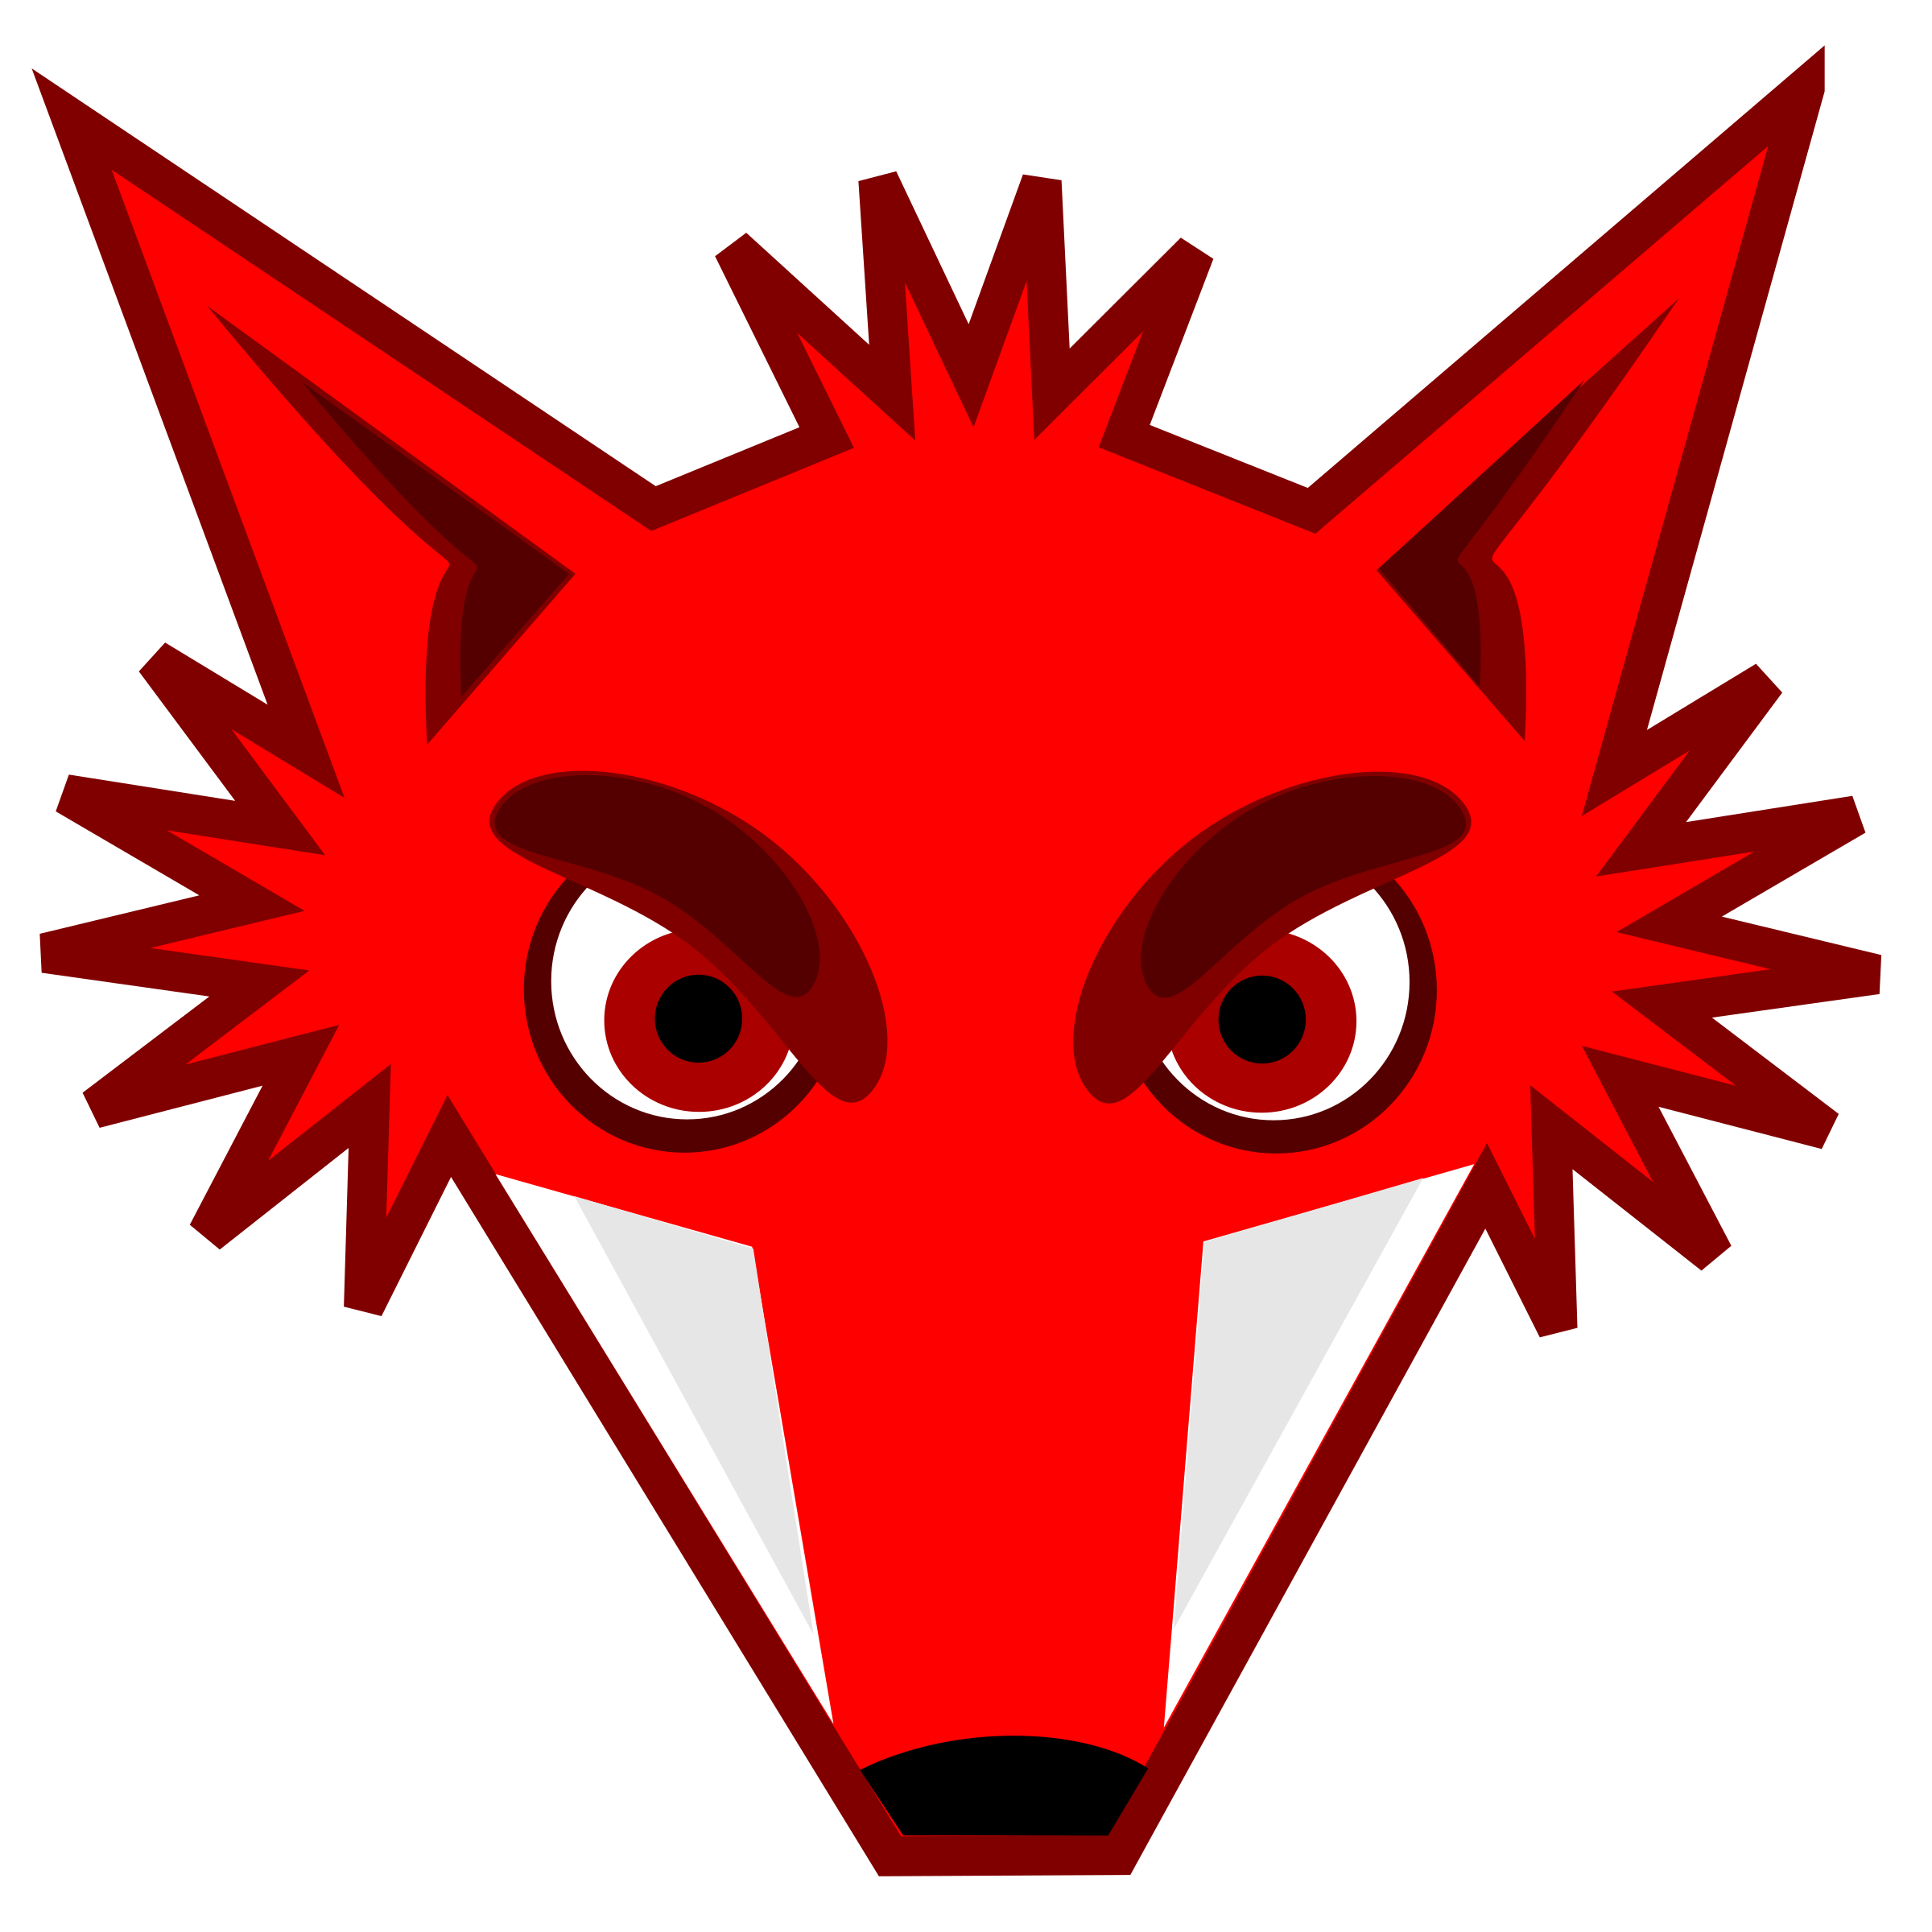 Fox clipart animated. Foxhead big image png